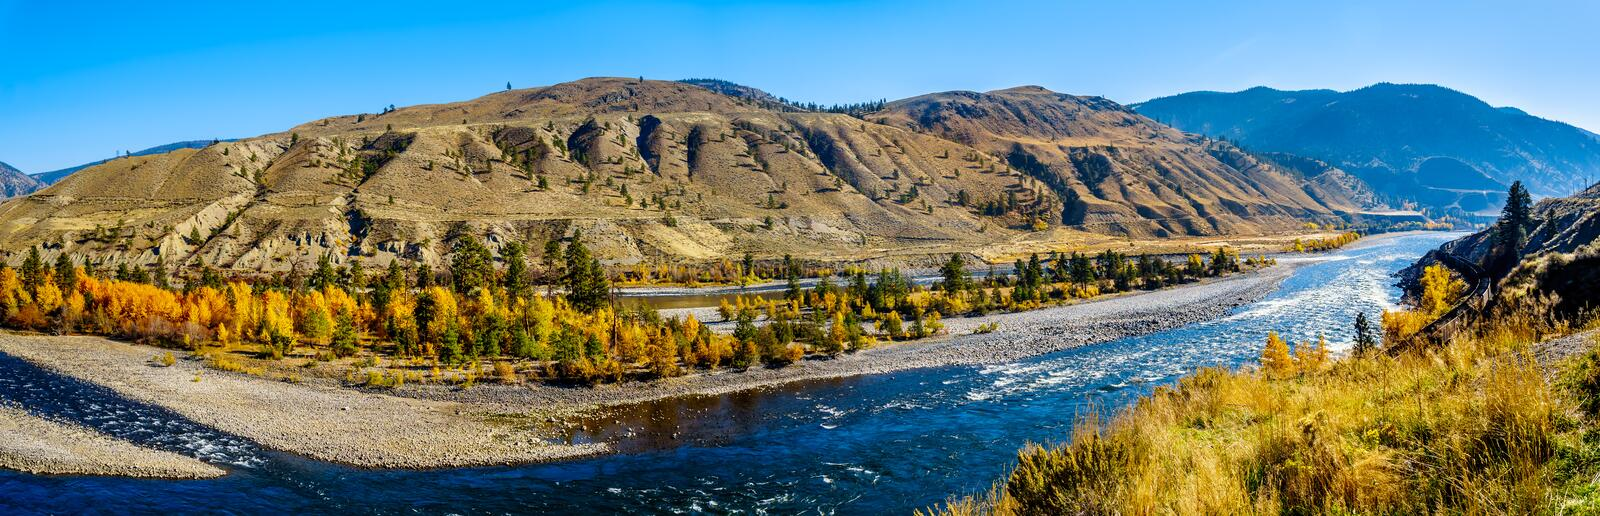 The Thompson River at Spences Bridge in BC Canada. Fall colors surrounding the Thompson River, North of the town of Spences Bridge on the Fraser Canyon route of royalty free stock photography